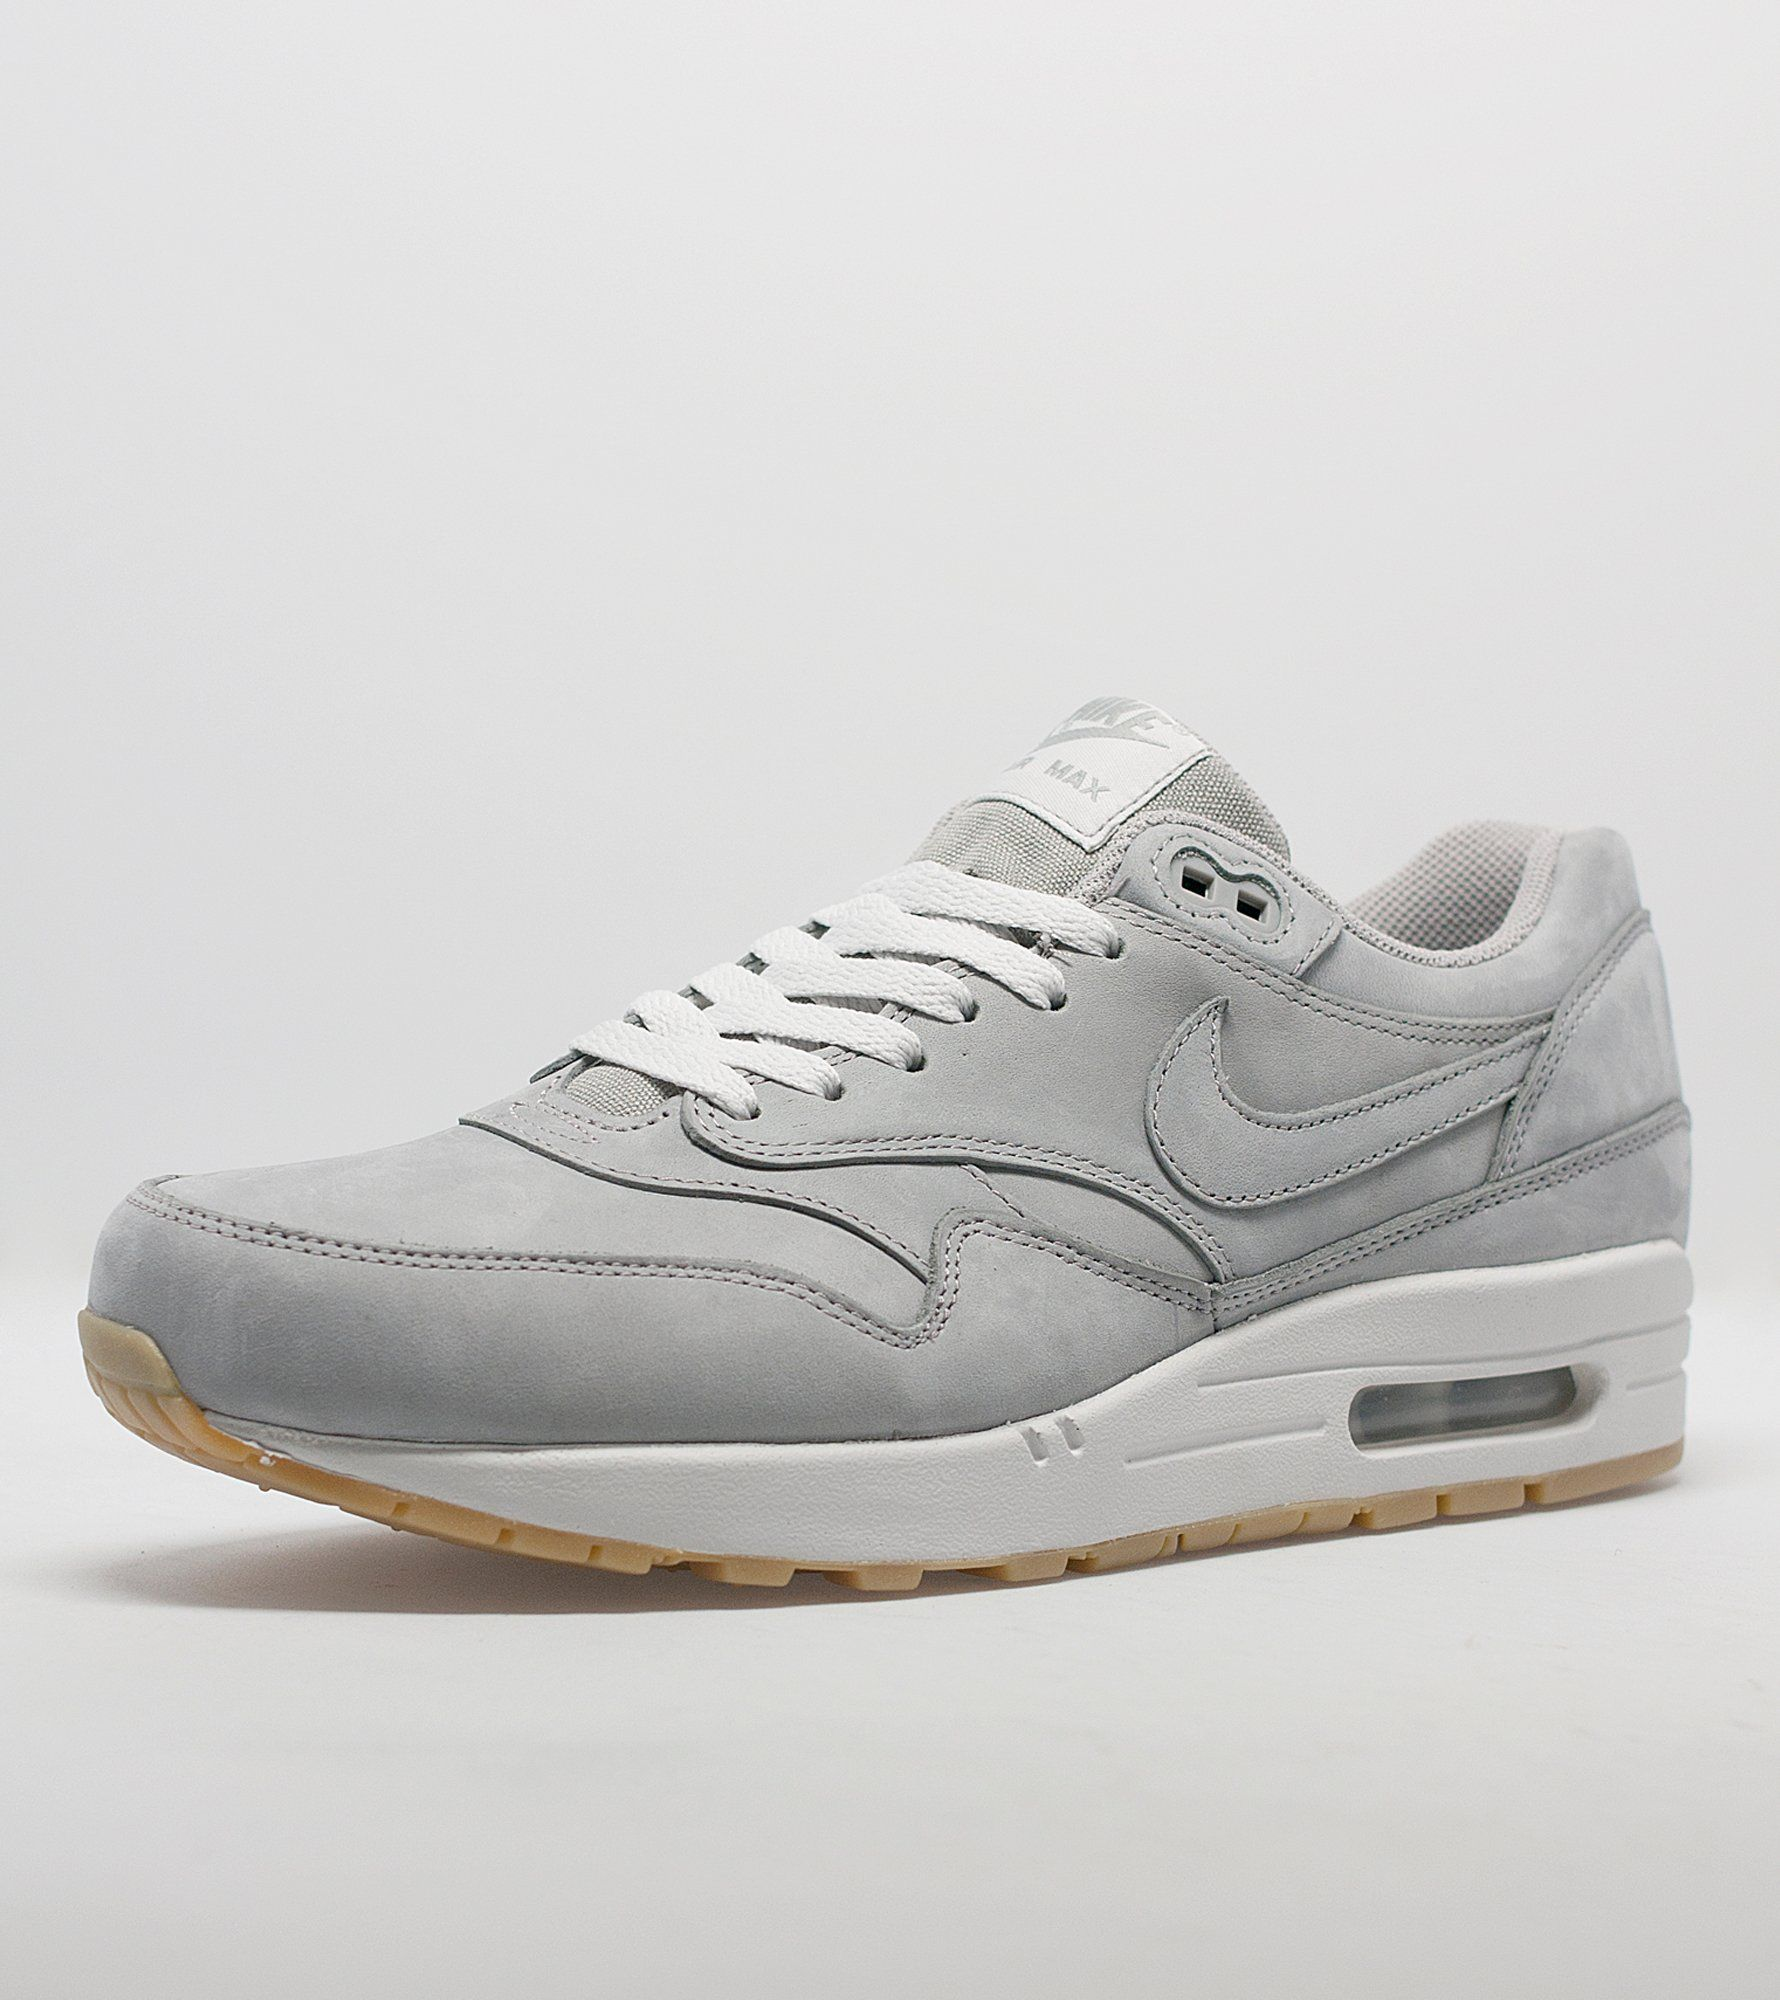 online store f507c b3cfb Nike Air Max 1 Leather Premium  Size